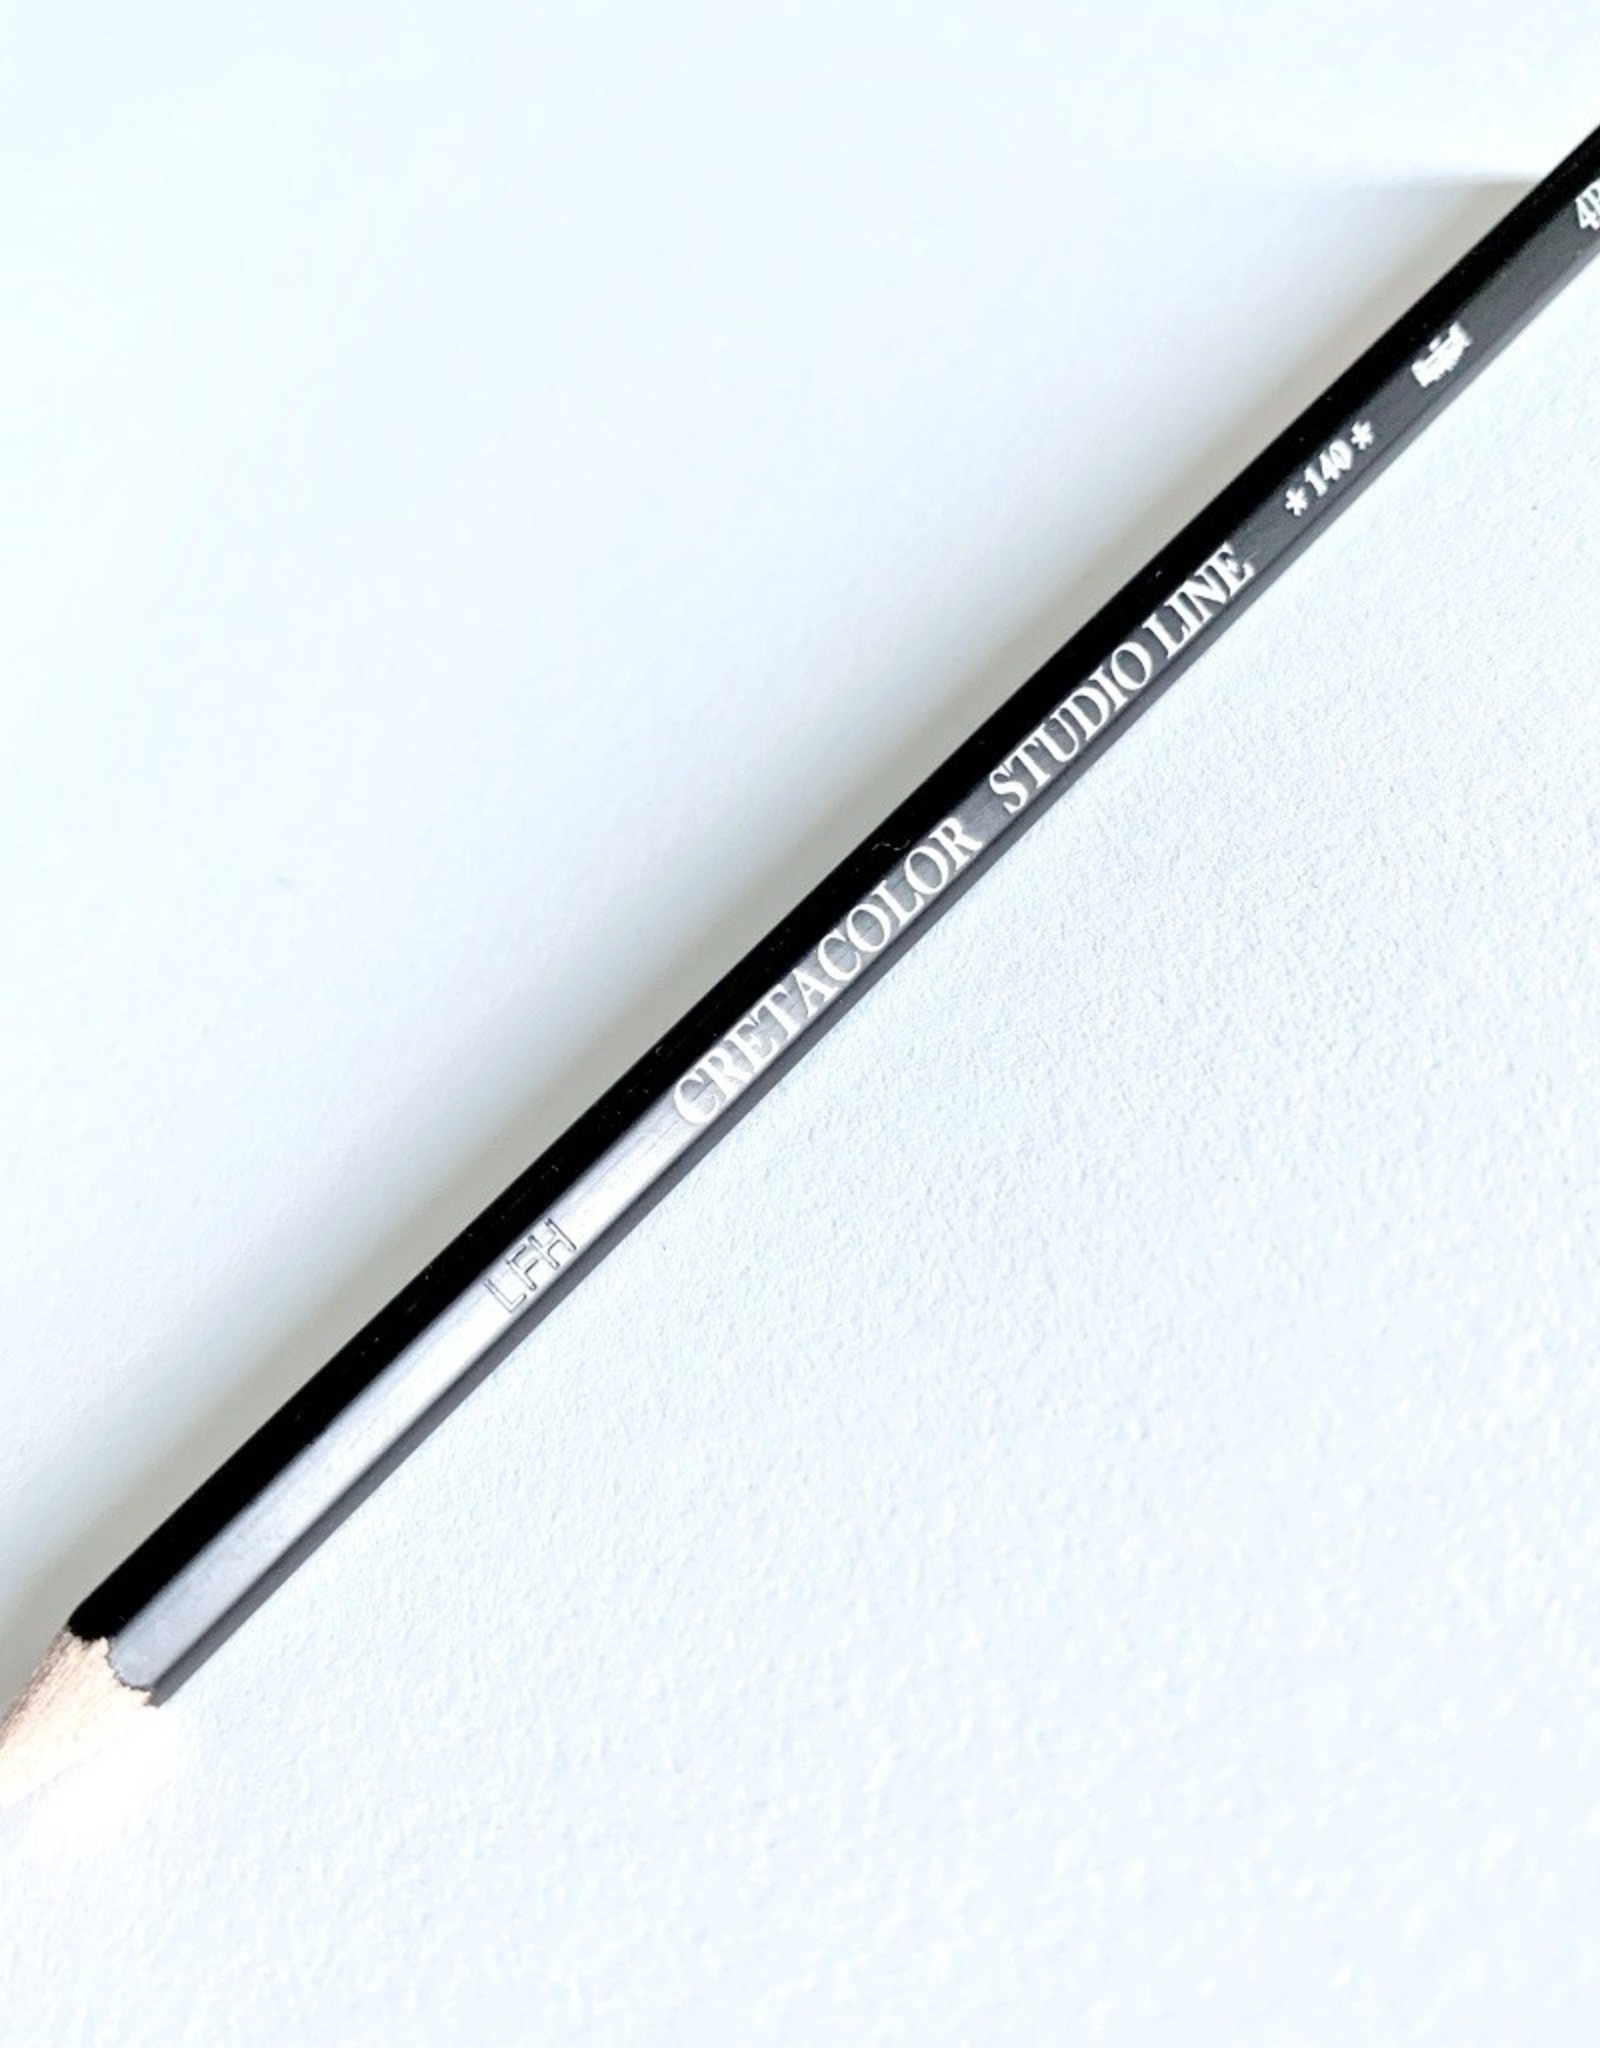 Cretacolor Artist Studio Line Graphite Pencil 4B